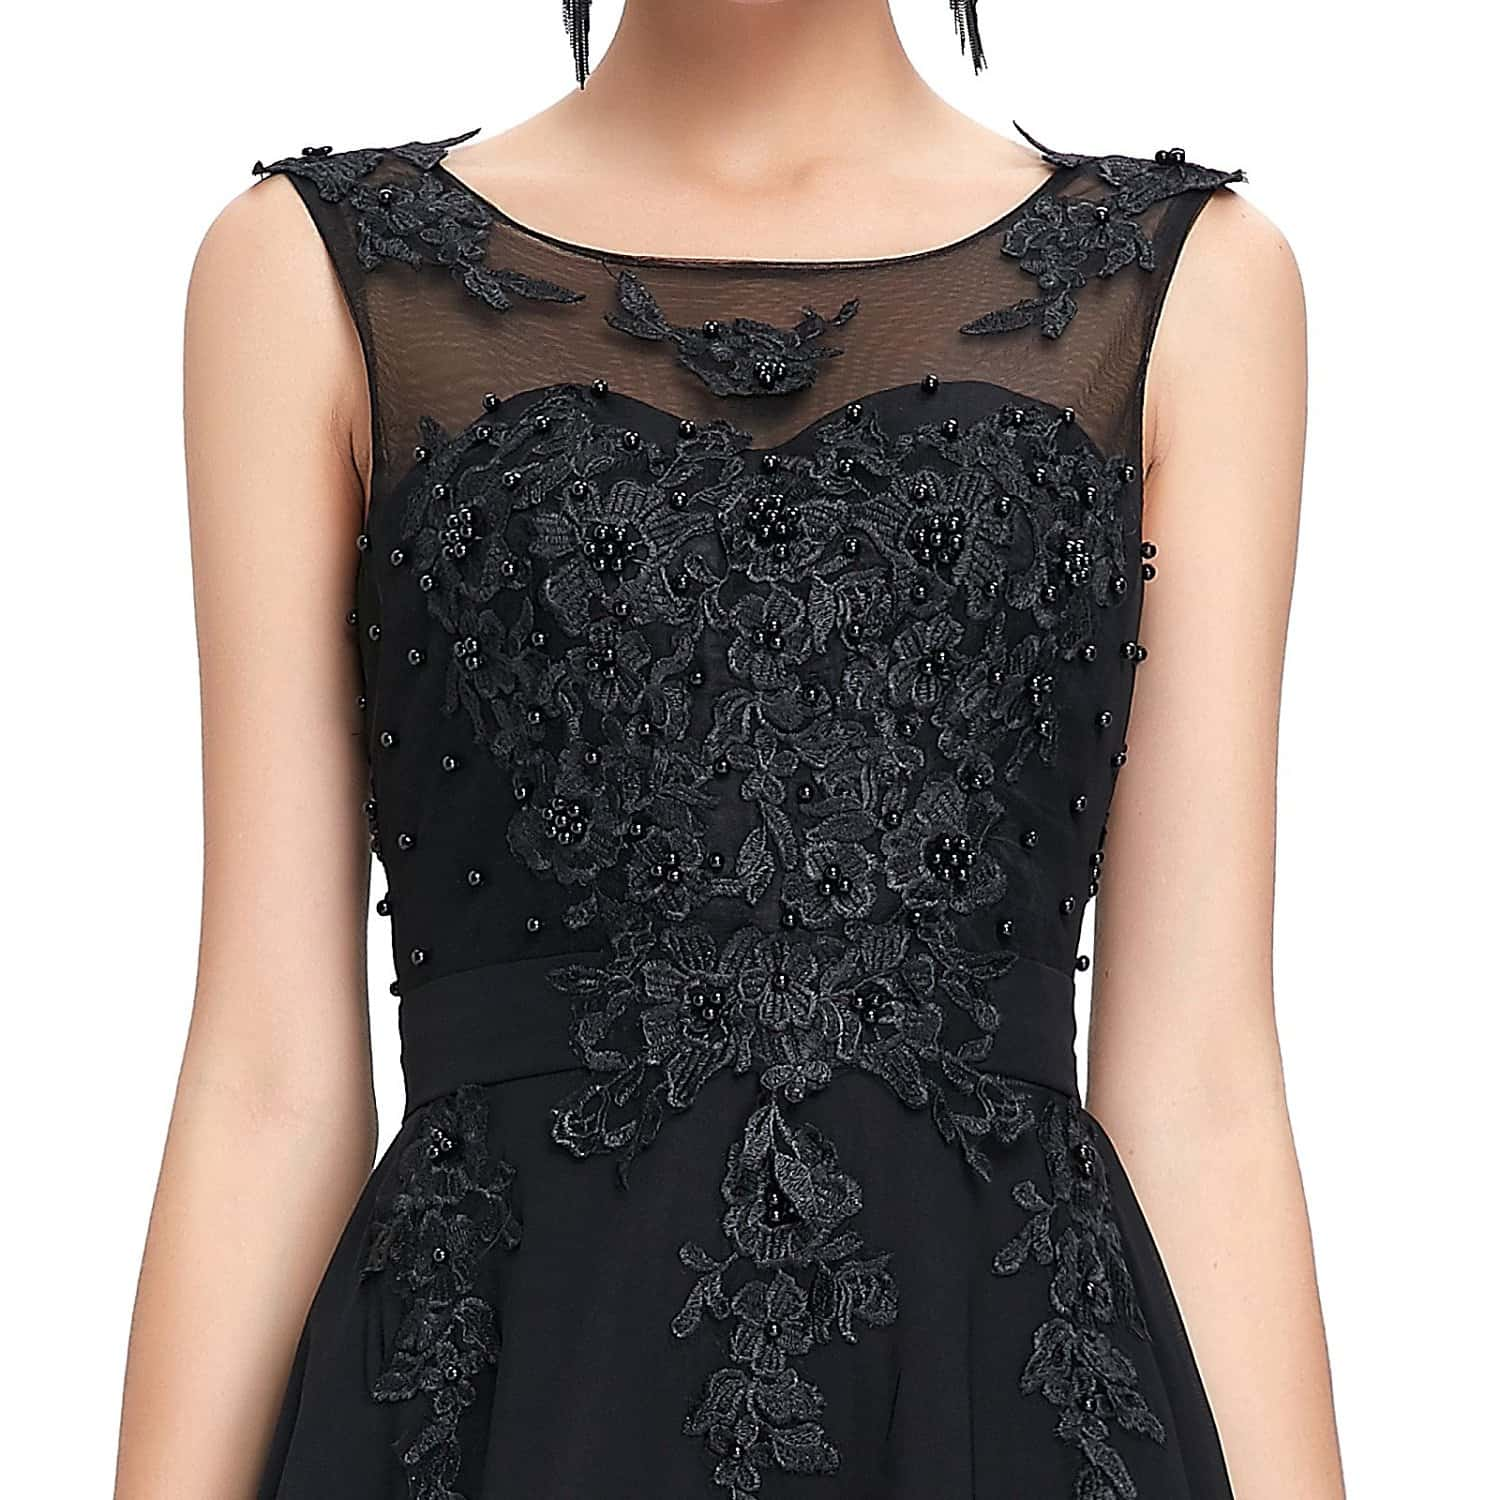 Black Beaded Vintage Dress Vintage Clothing Online